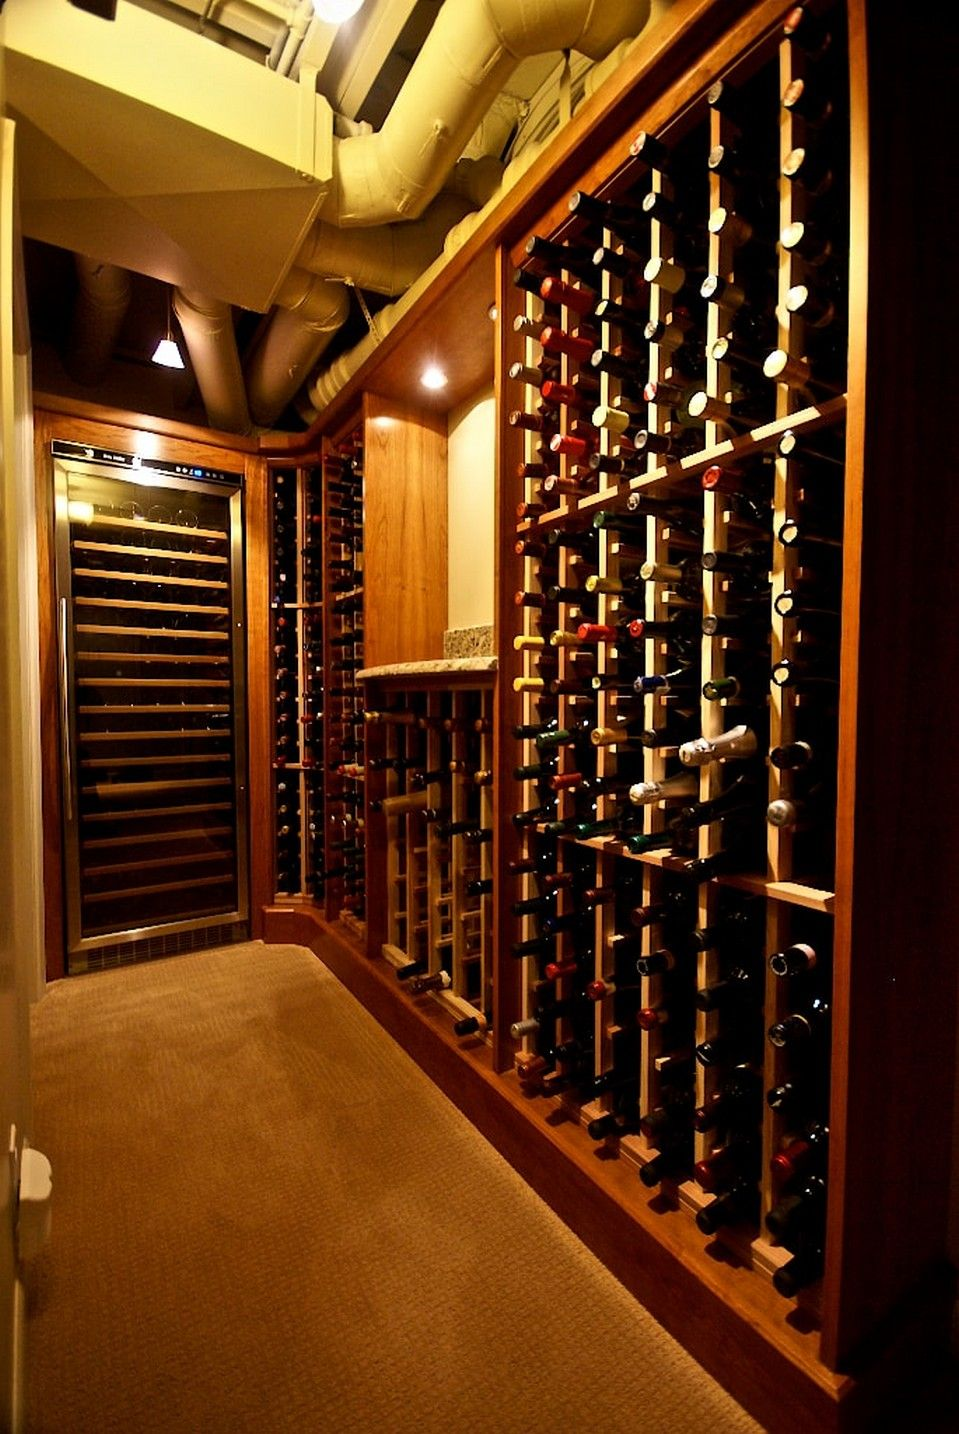 52 Glorious Cellar Architecture Olla There Now I Want To